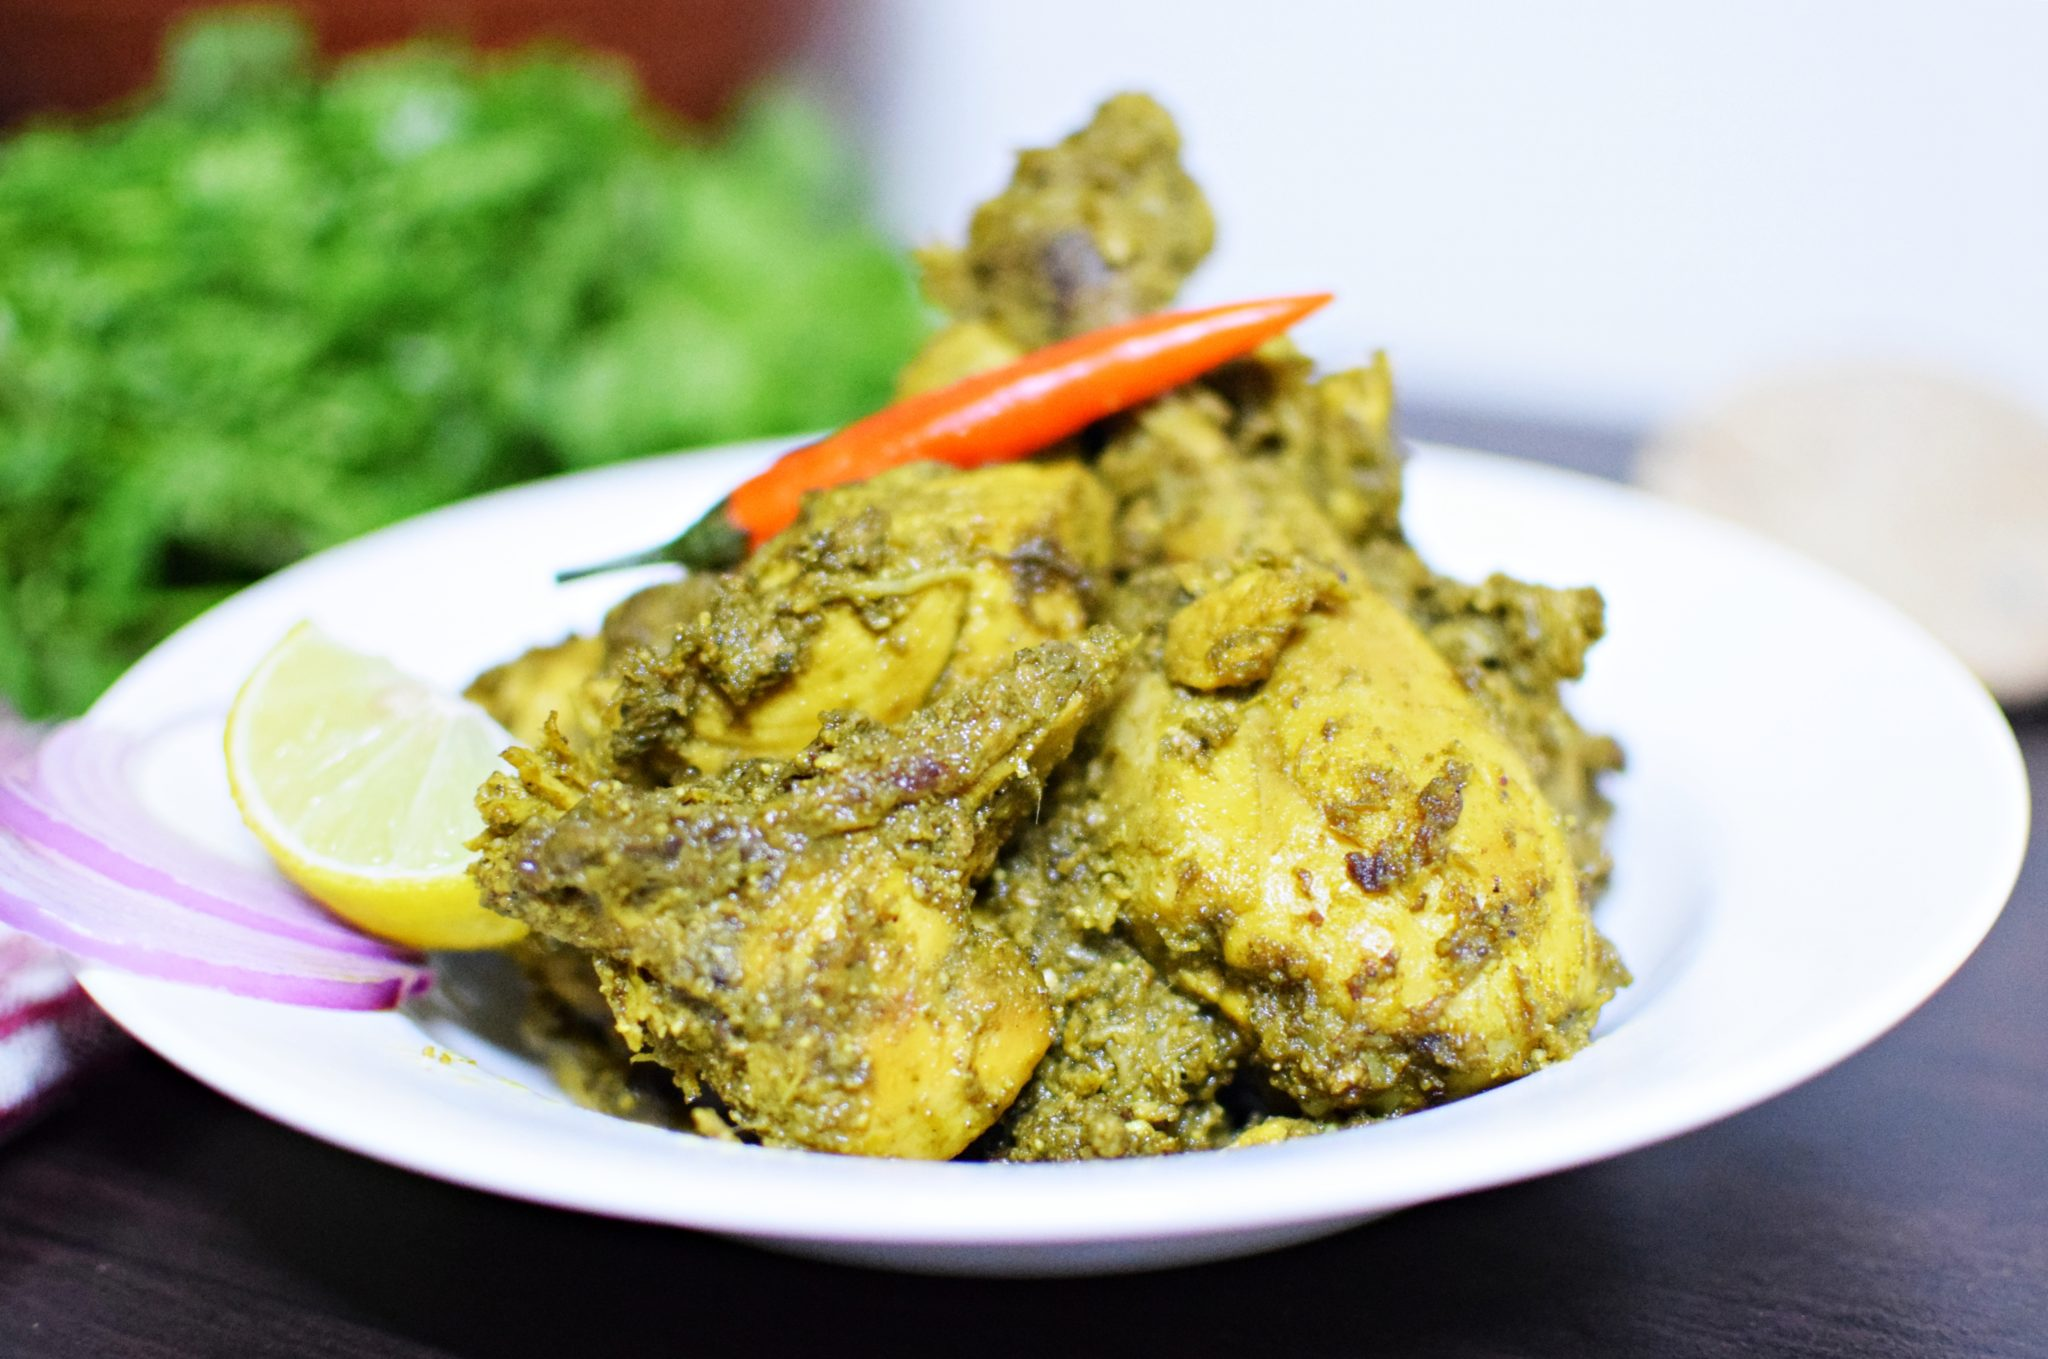 Chicken cafreal recipe mareenas recipe collections till we came to chennai my lunch preparations never started before 11 am as both j and d used to be home for lunch the whole scenario changed after forumfinder Image collections